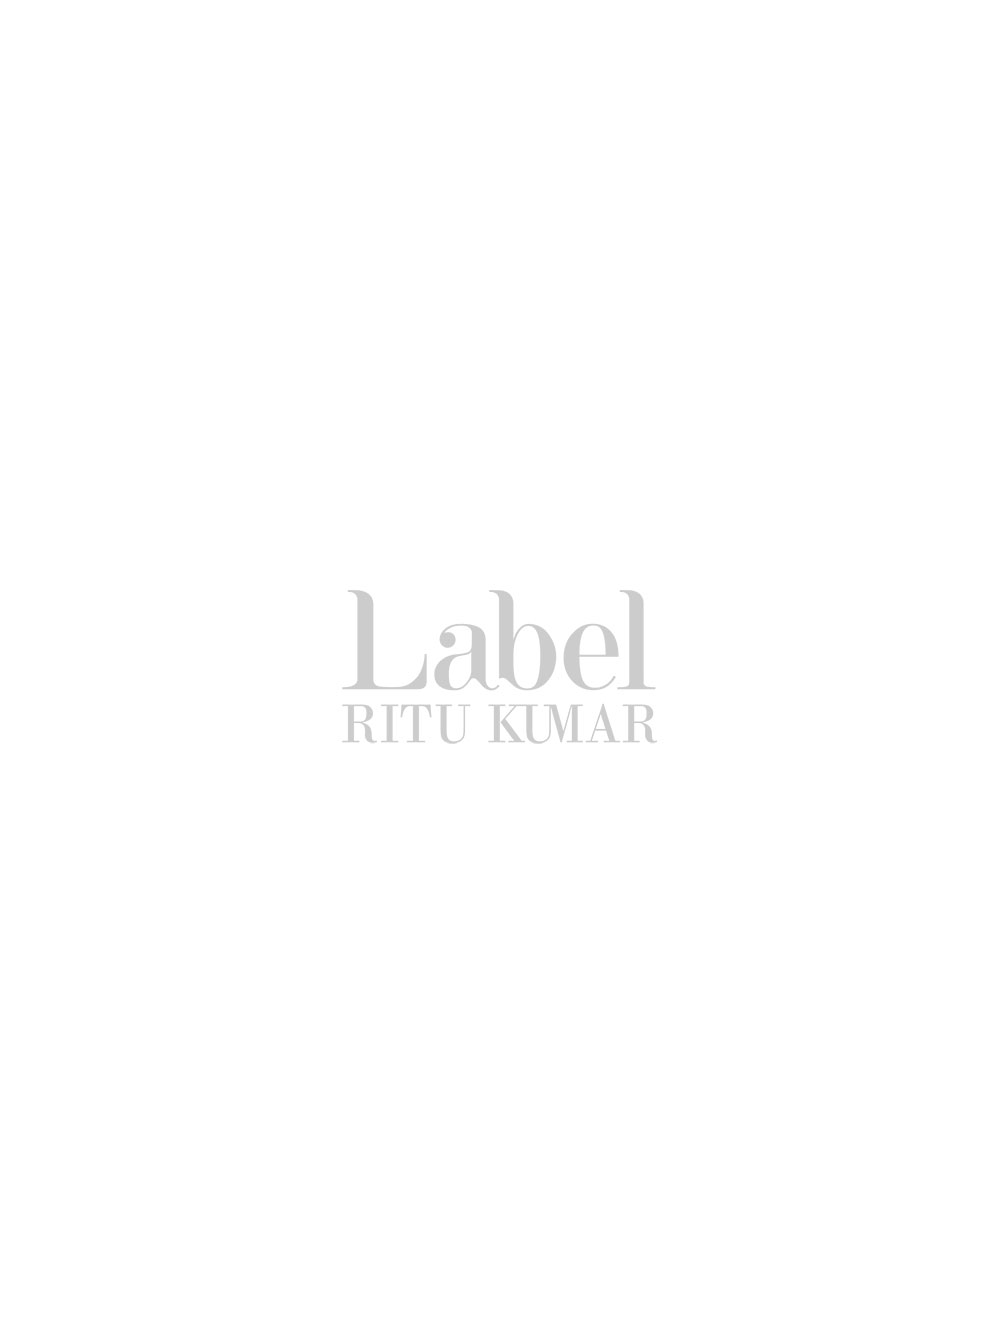 Black Flared Pants  by label ritu kumar